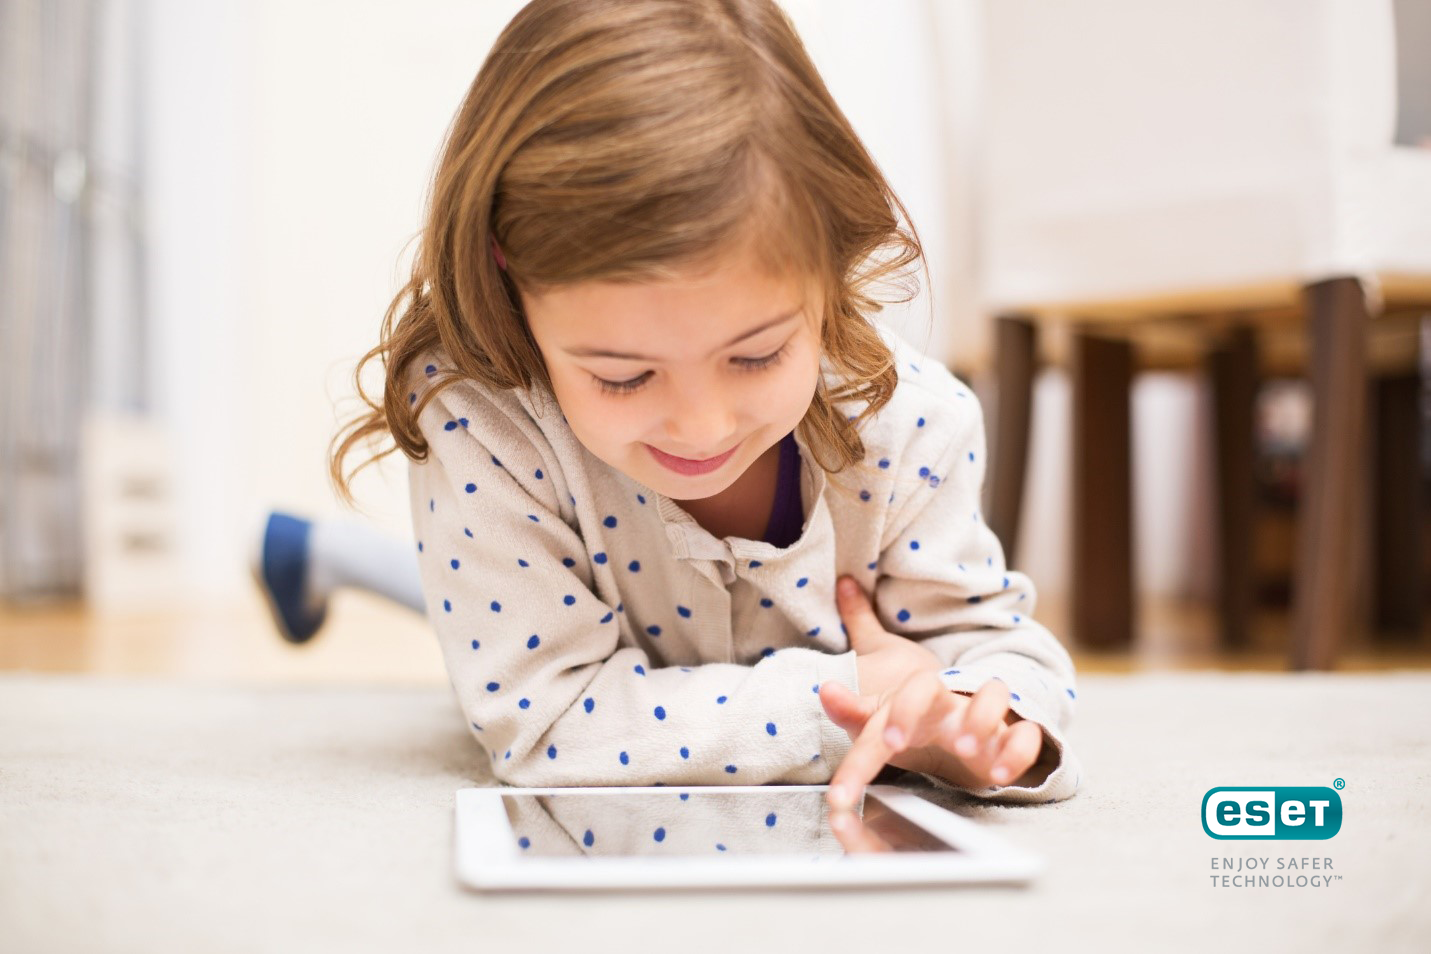 Safer kids online - ESET: How secure is your child's cell phone?